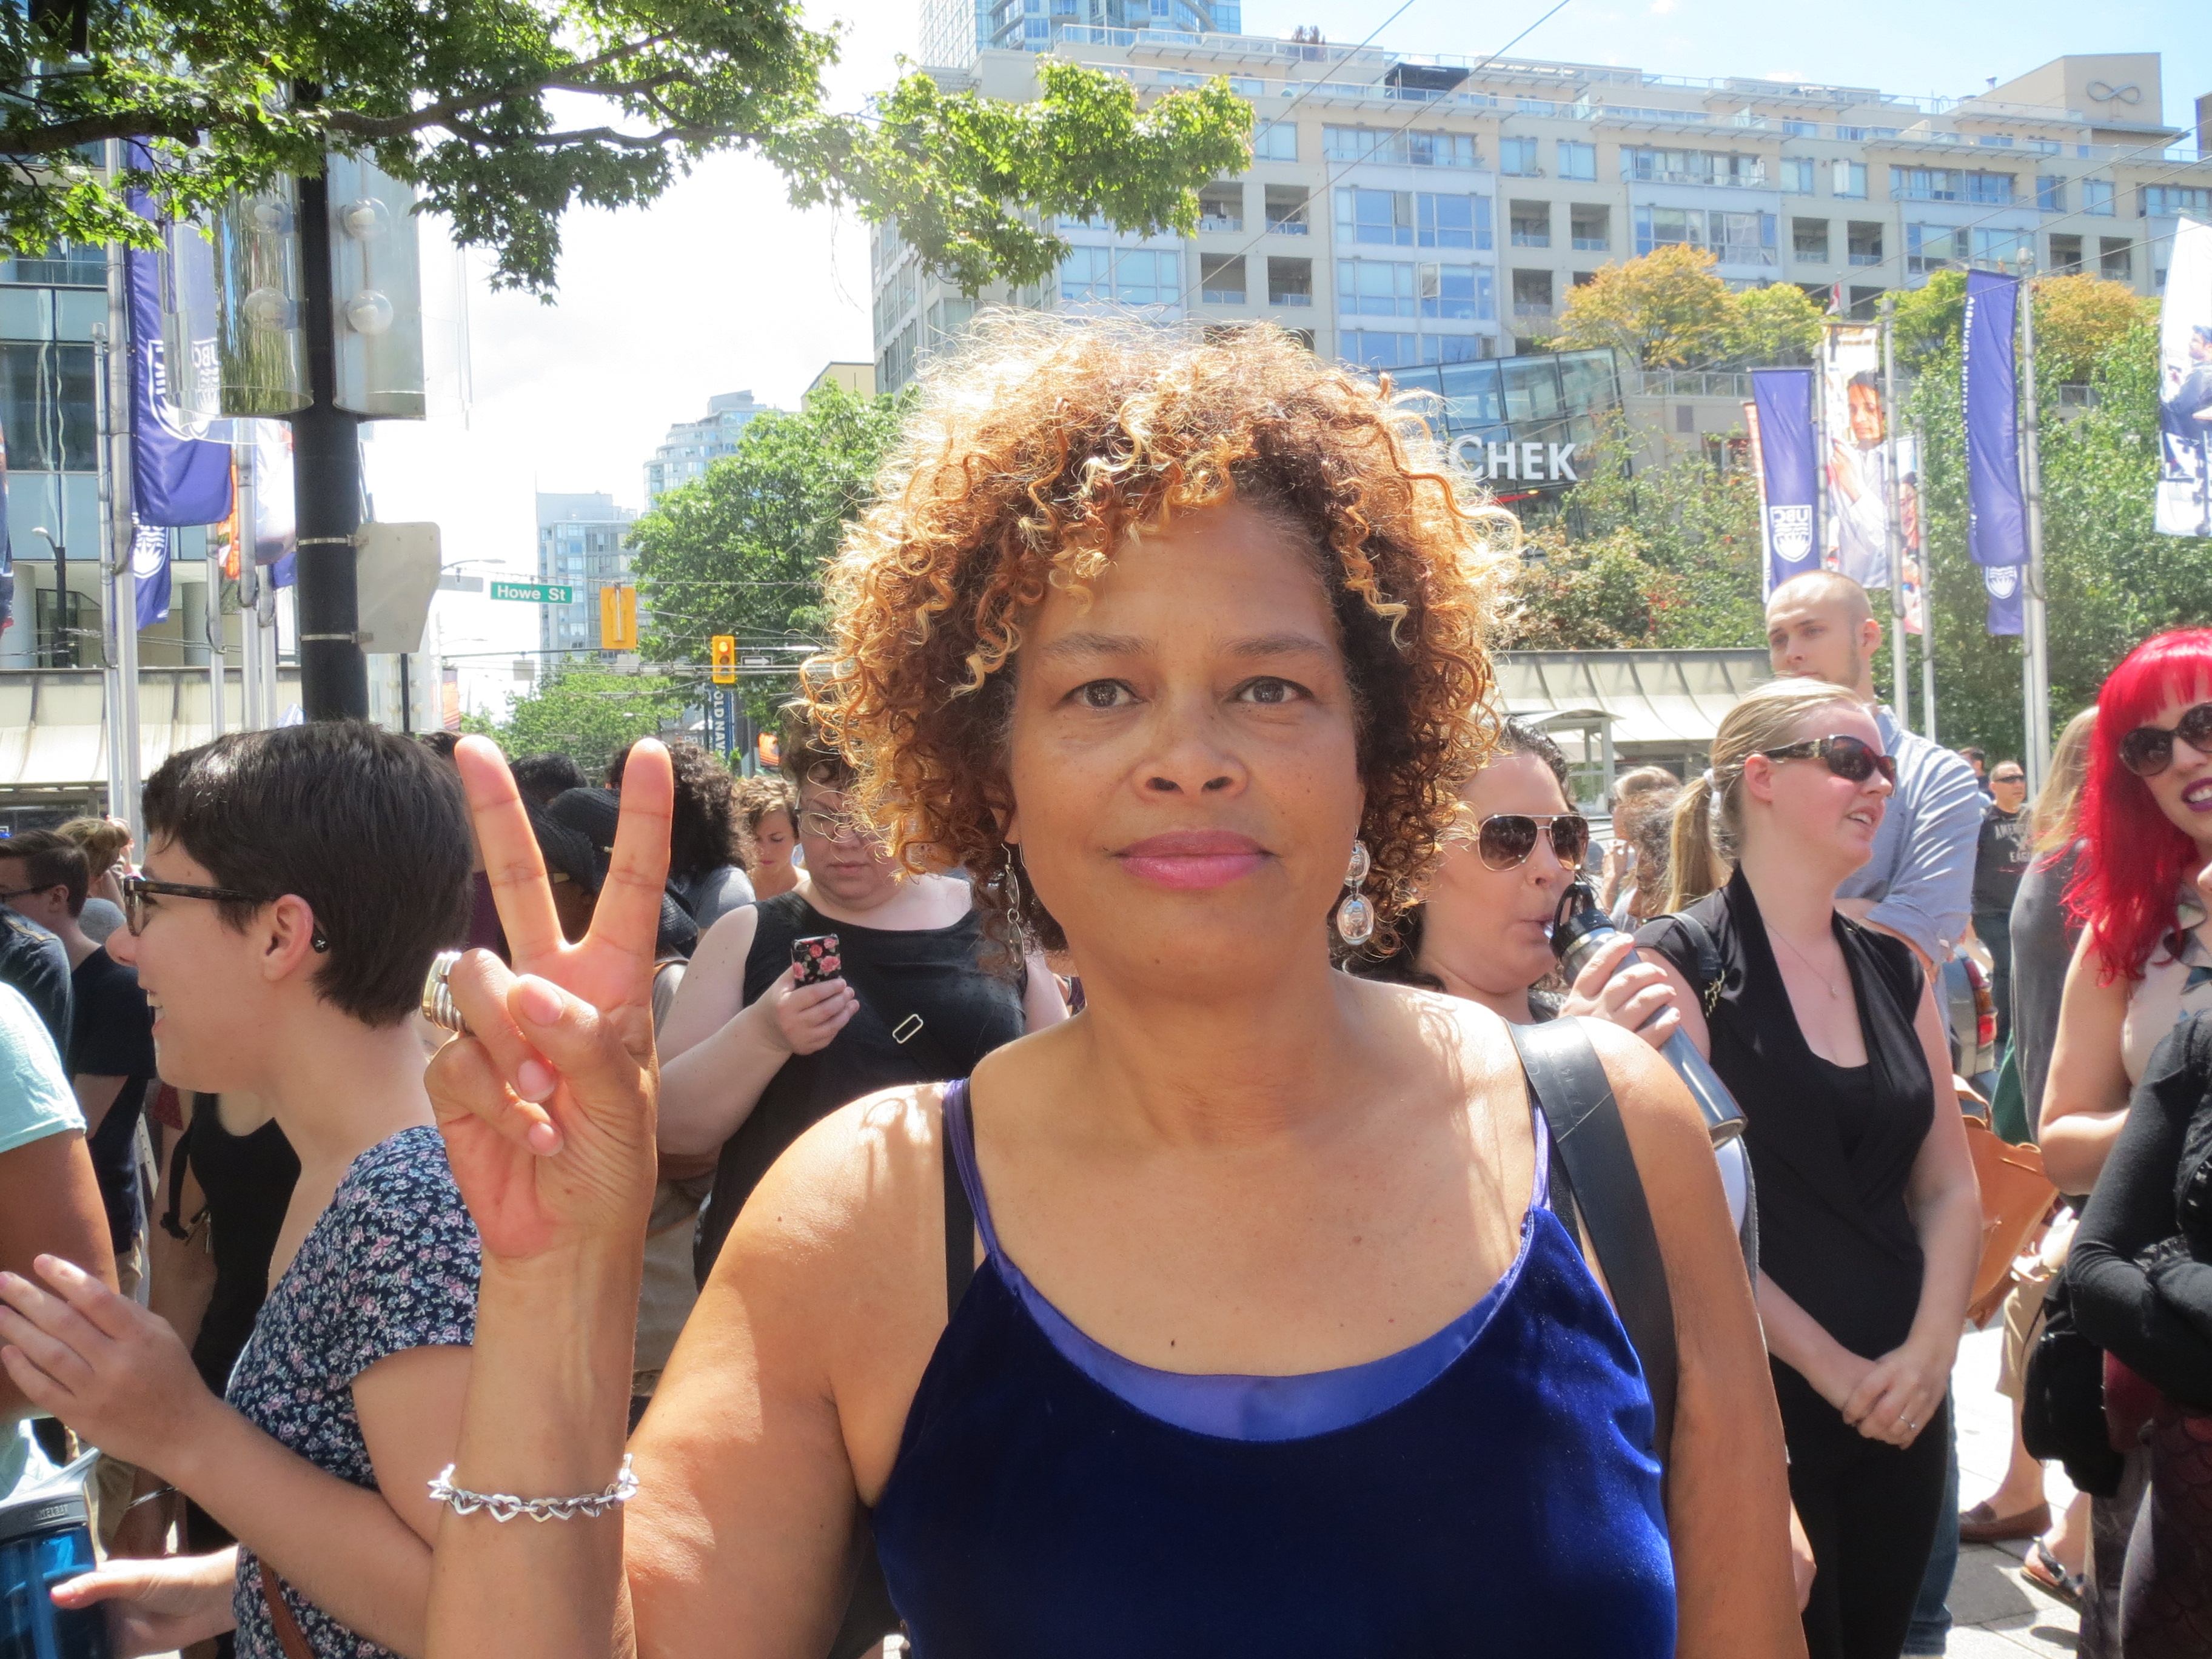 Constance Barnes holding up a peace sign surrounded by a crowd